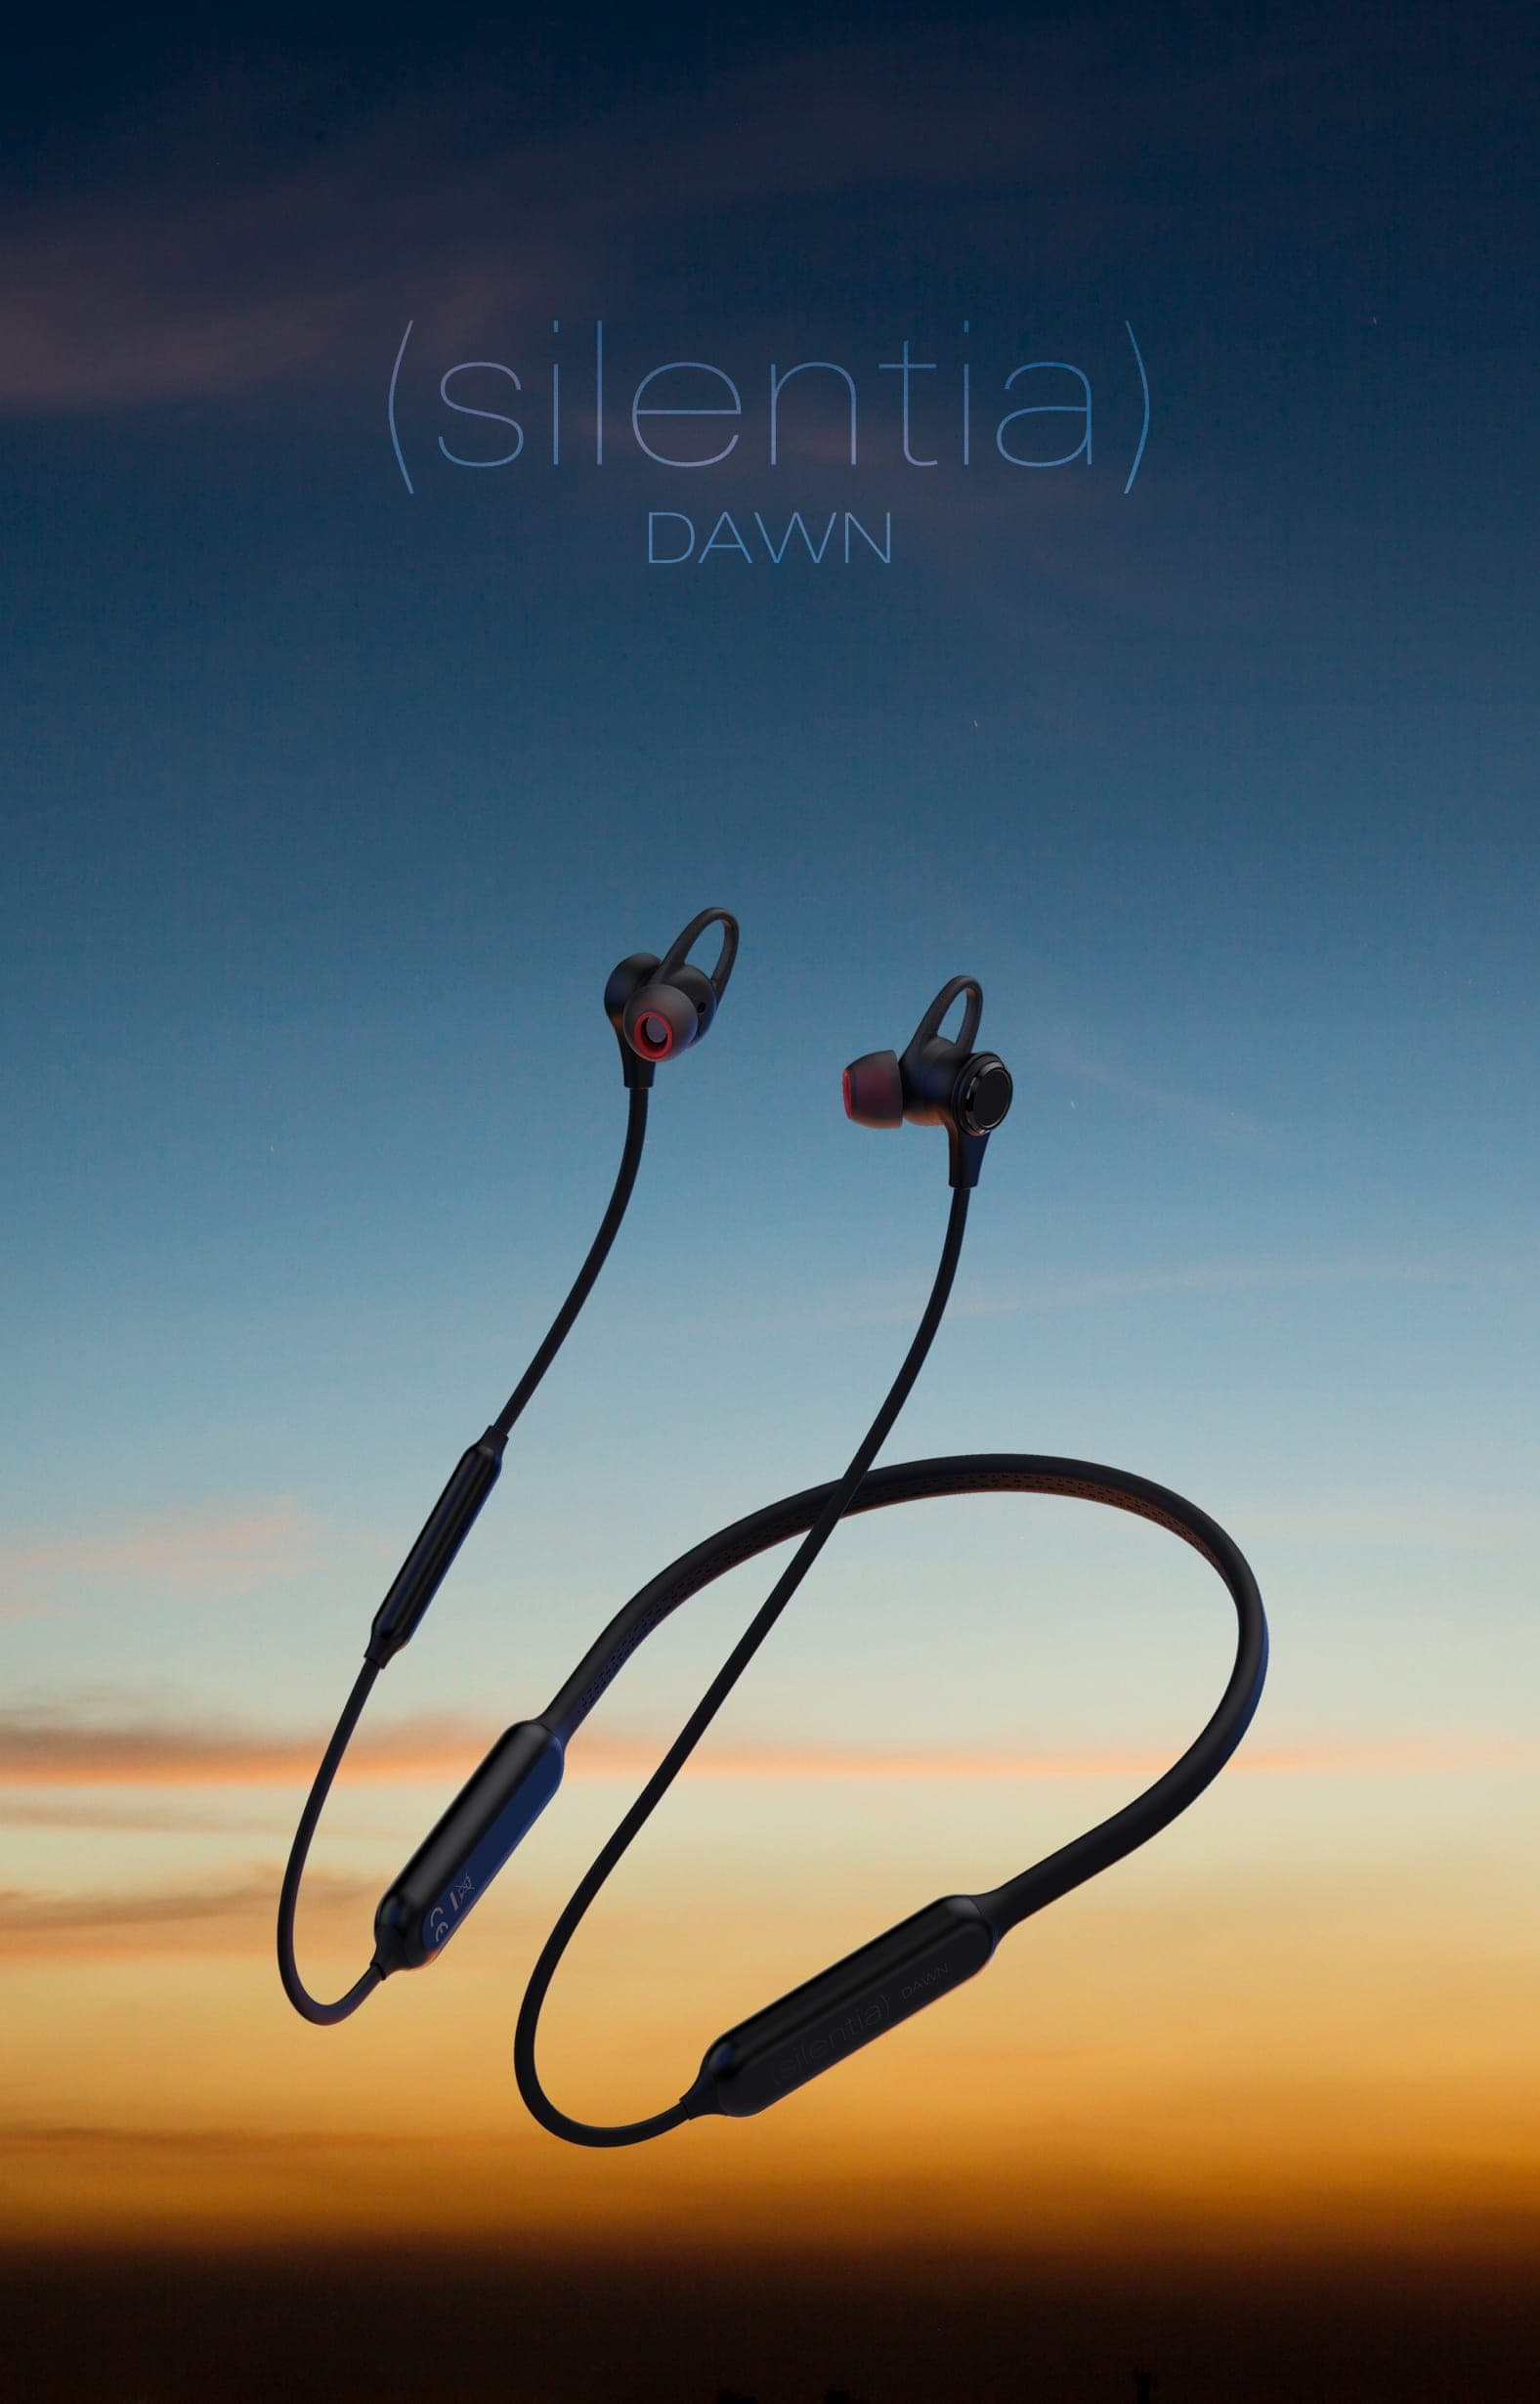 Silentia Dawn - Wireless Noise Cancelling Earphones Black